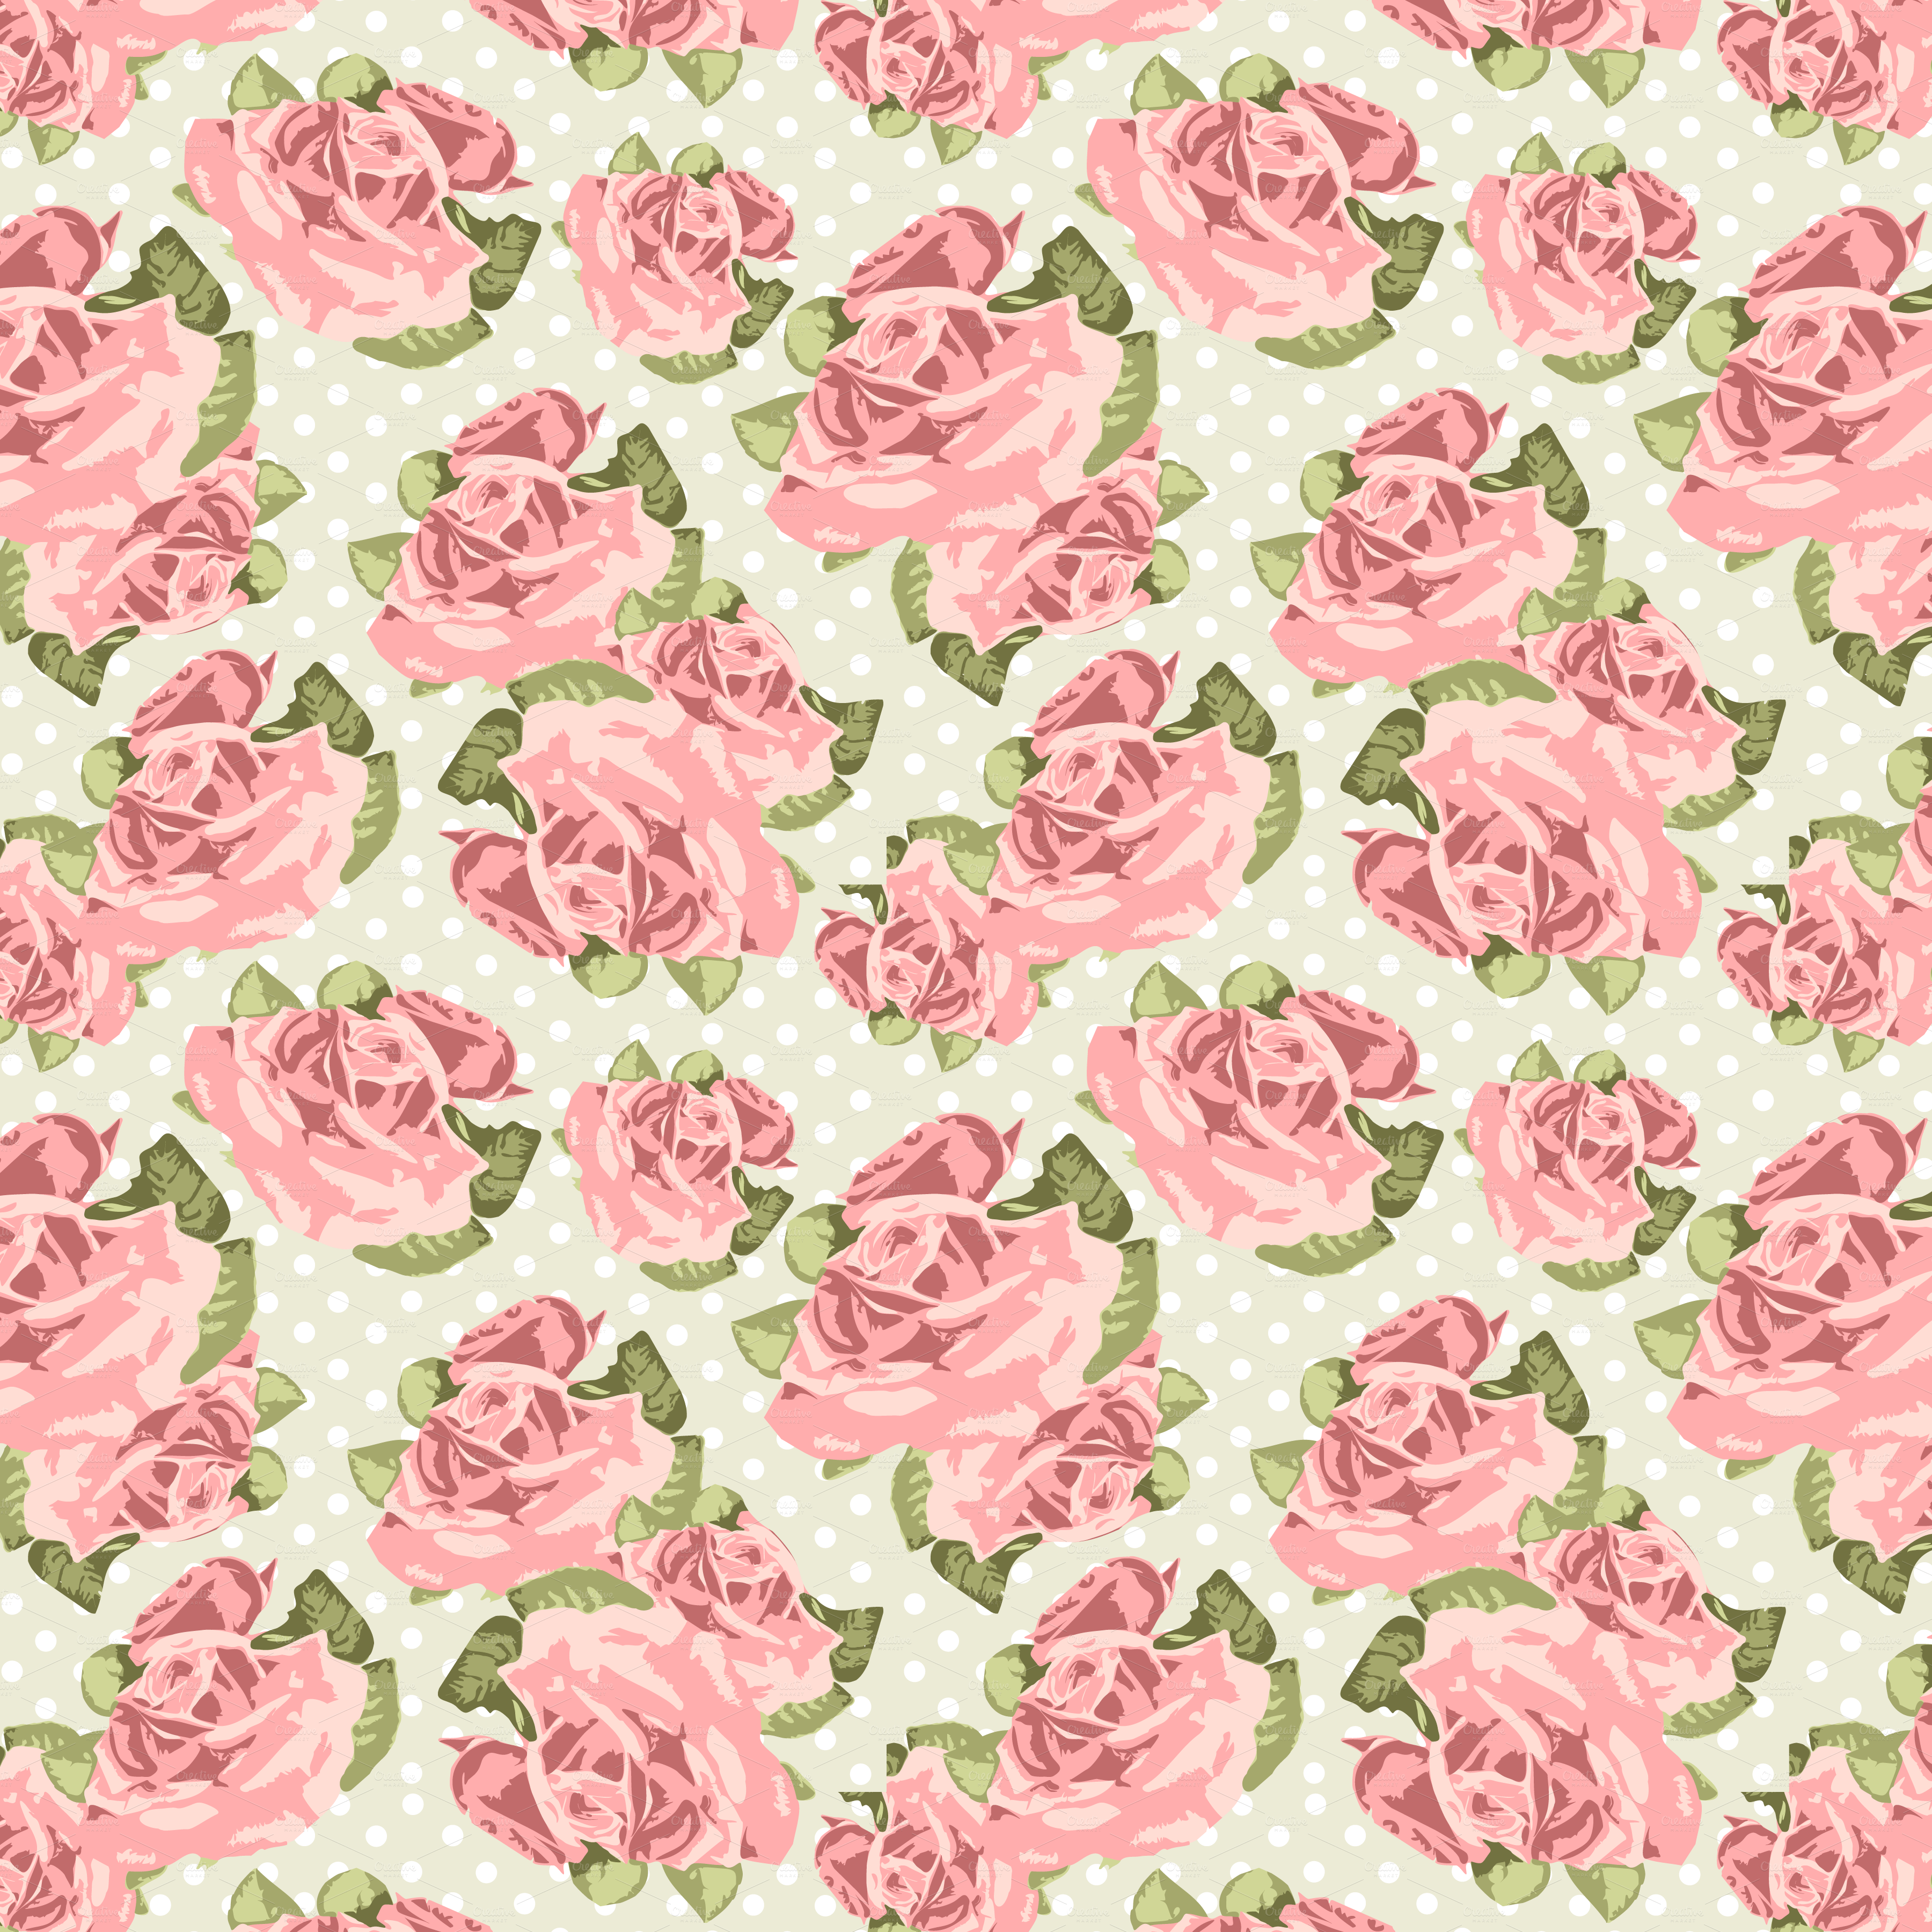 3600x3600 Vintage Flower Wallpapers Tumblr Group (36+)